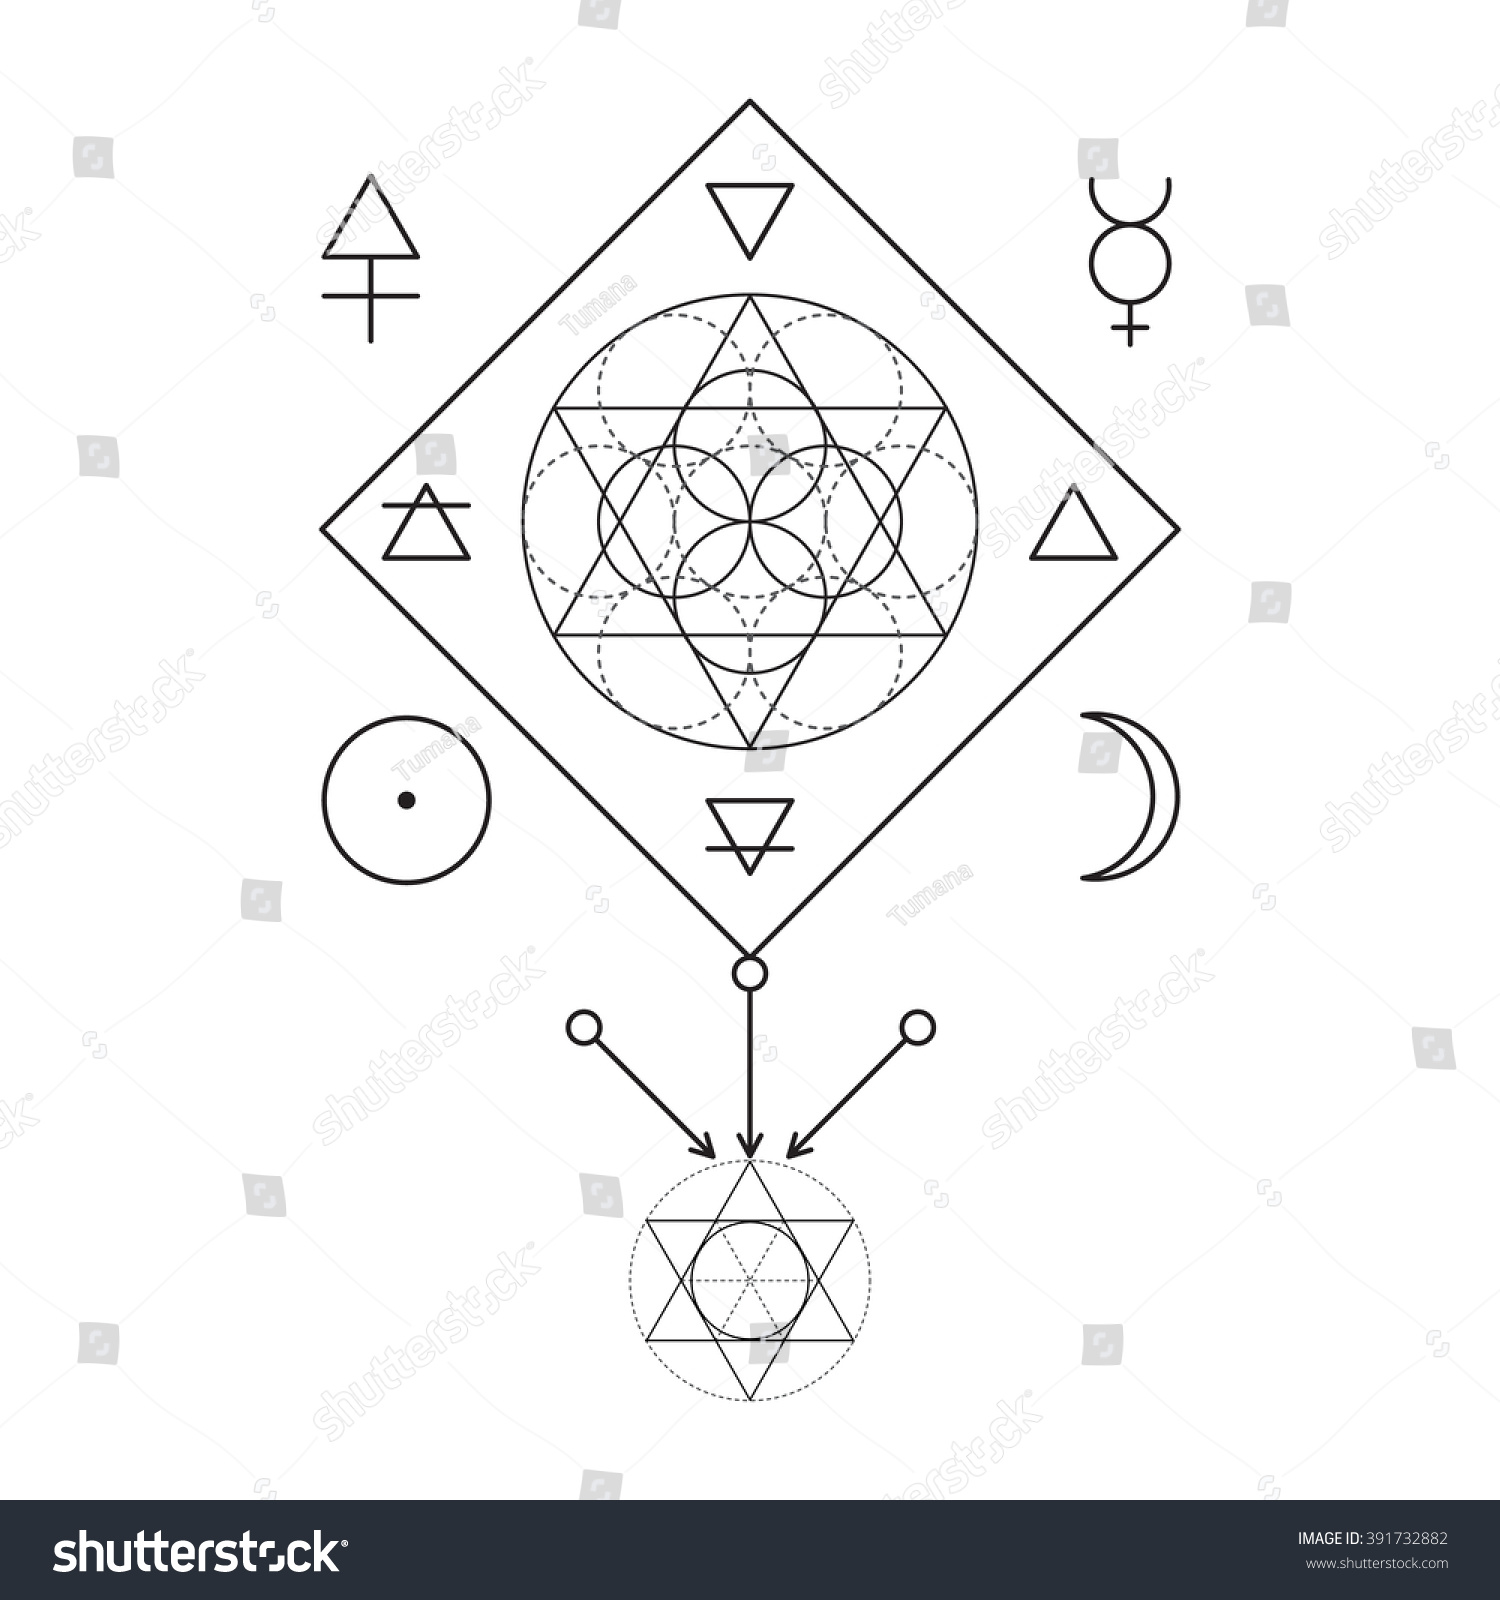 Royalty Free Symbol Of Alchemy And Sacred Geometry 391732882